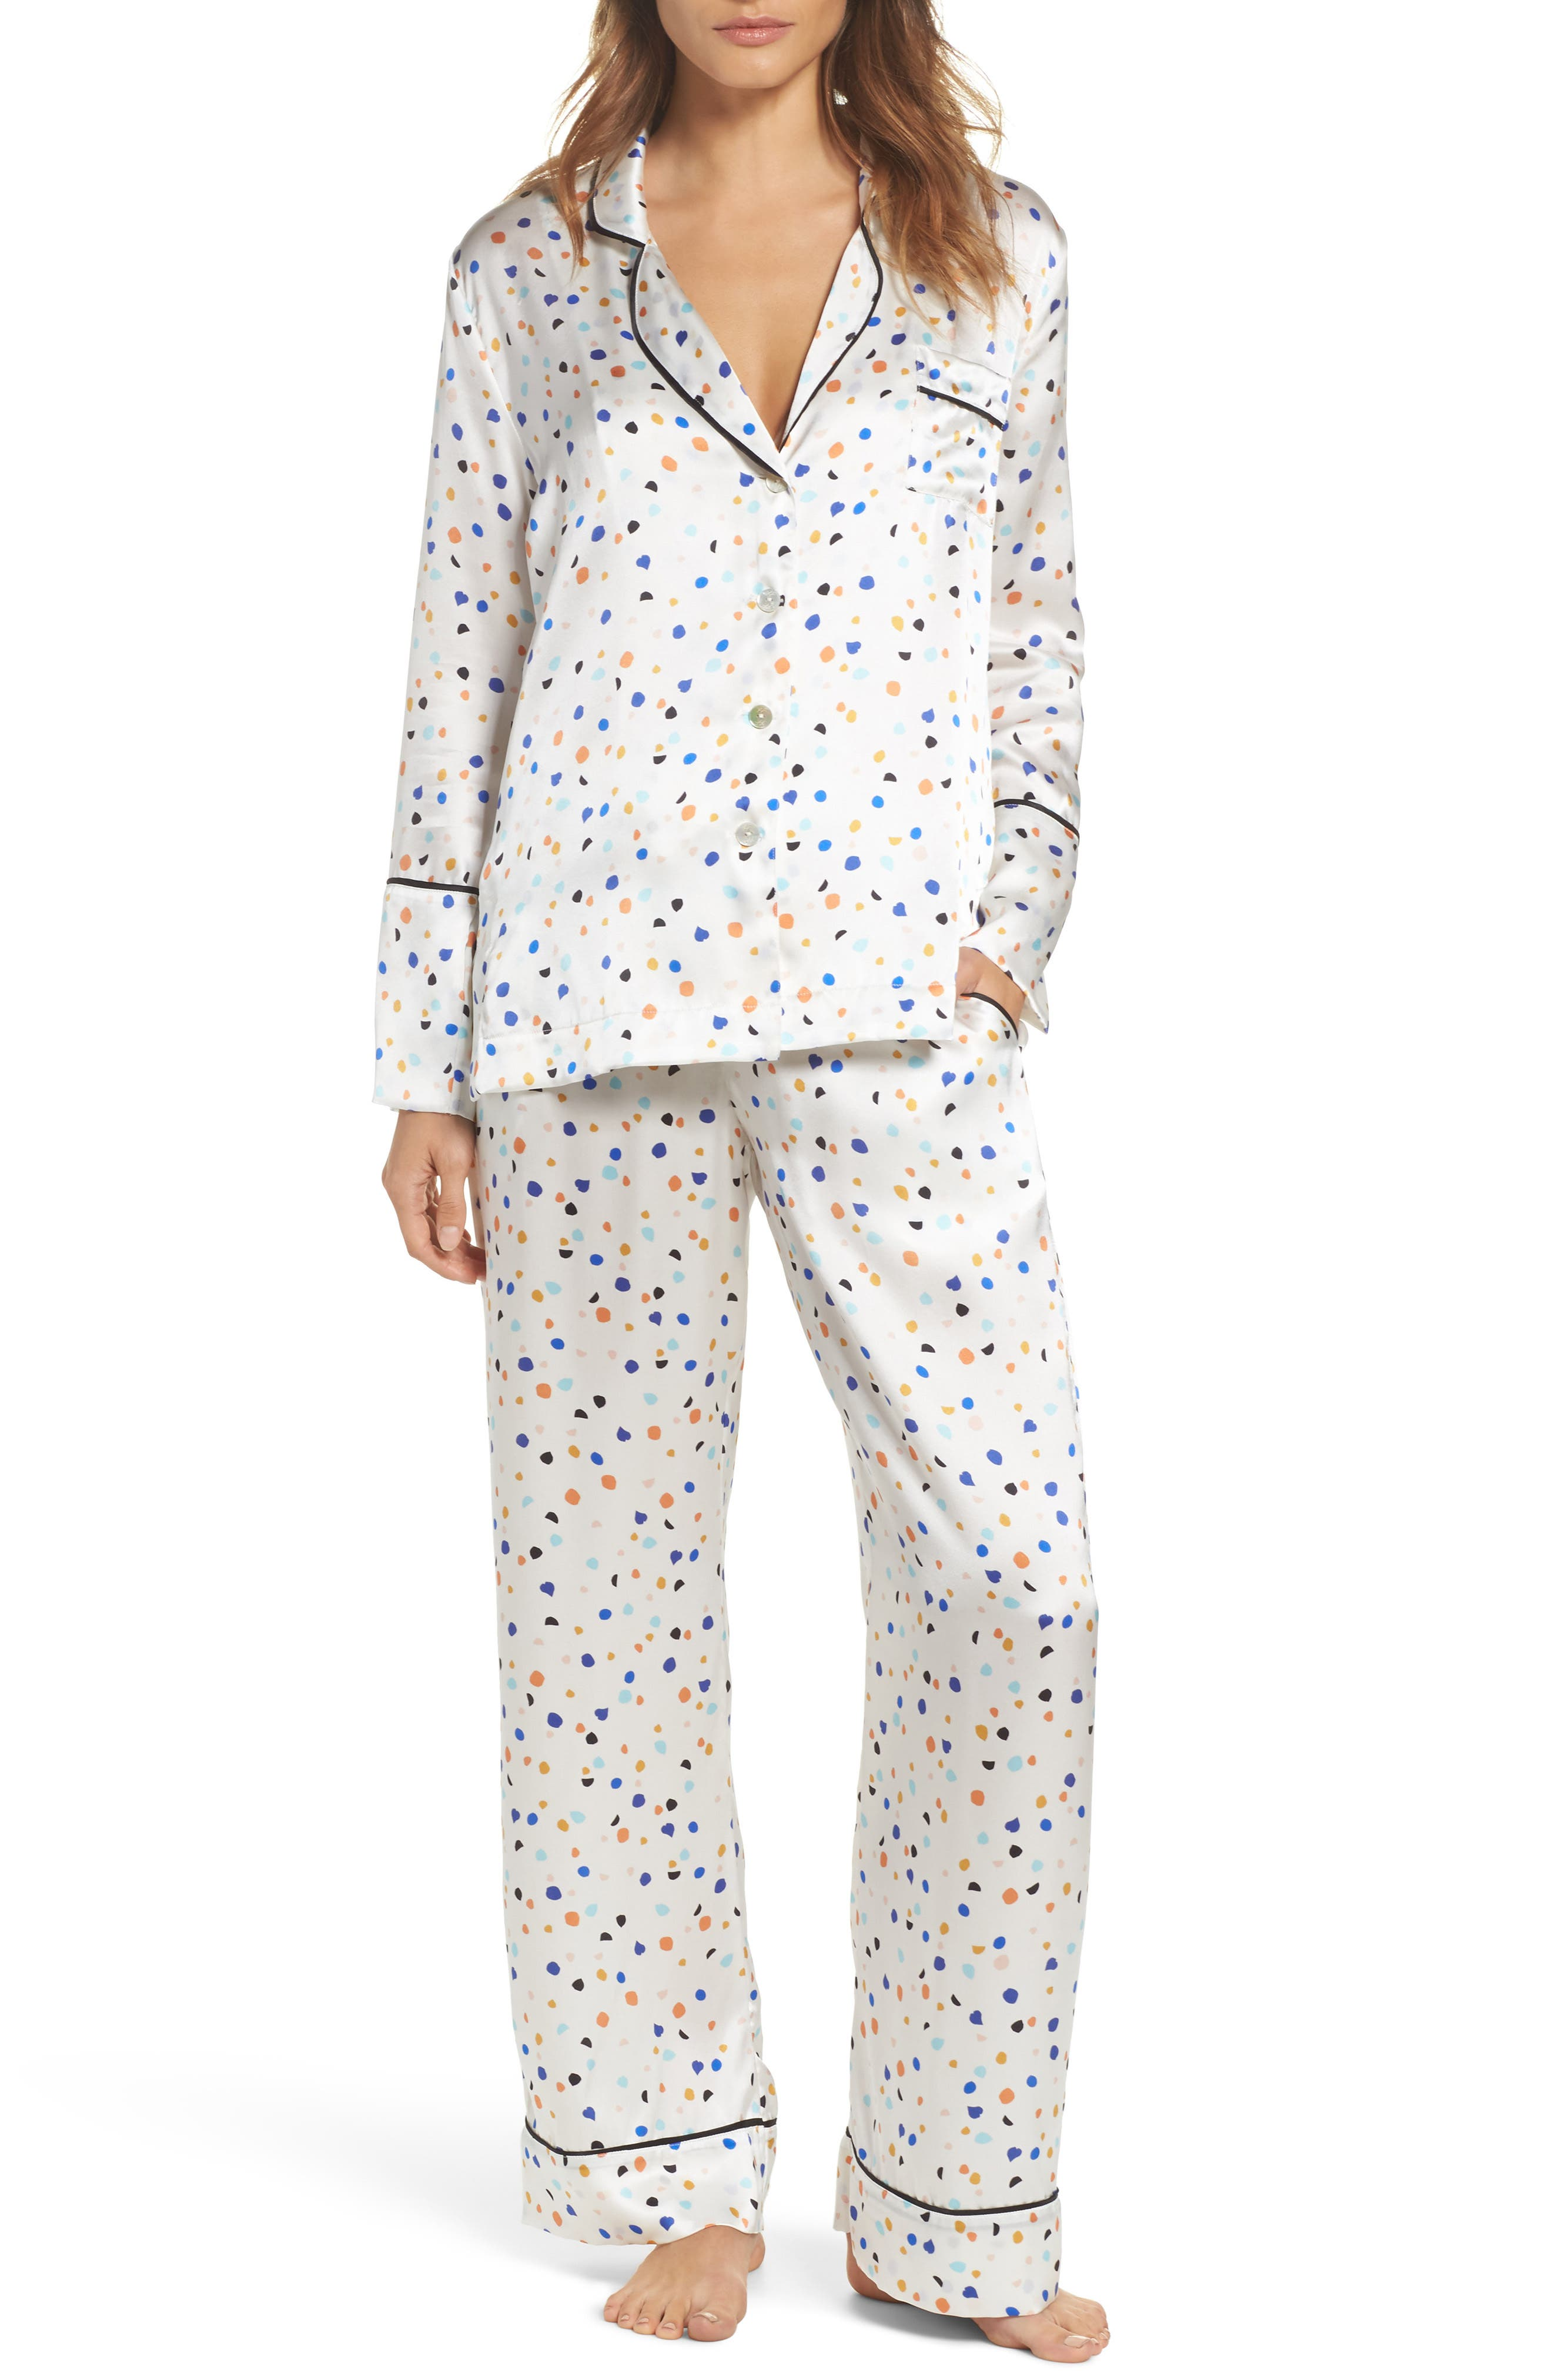 Lisbon Pebble Evie Silk Pajamas,                         Main,                         color, 100